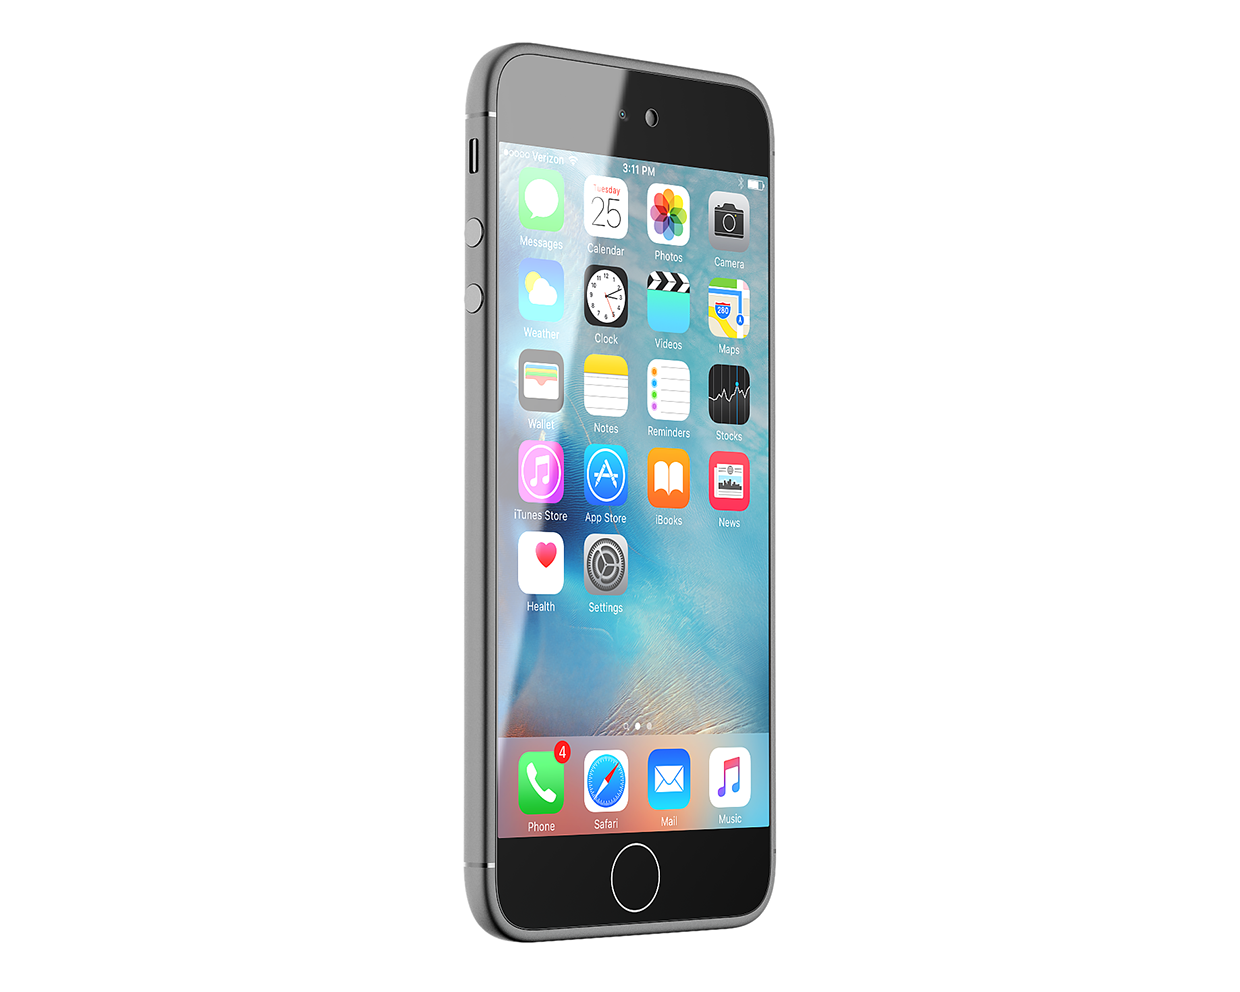 Iphone 7 clipart hd picture freeuse Free Iphone7 Png, Download Free Clip Art, Free Clip Art on ... picture freeuse